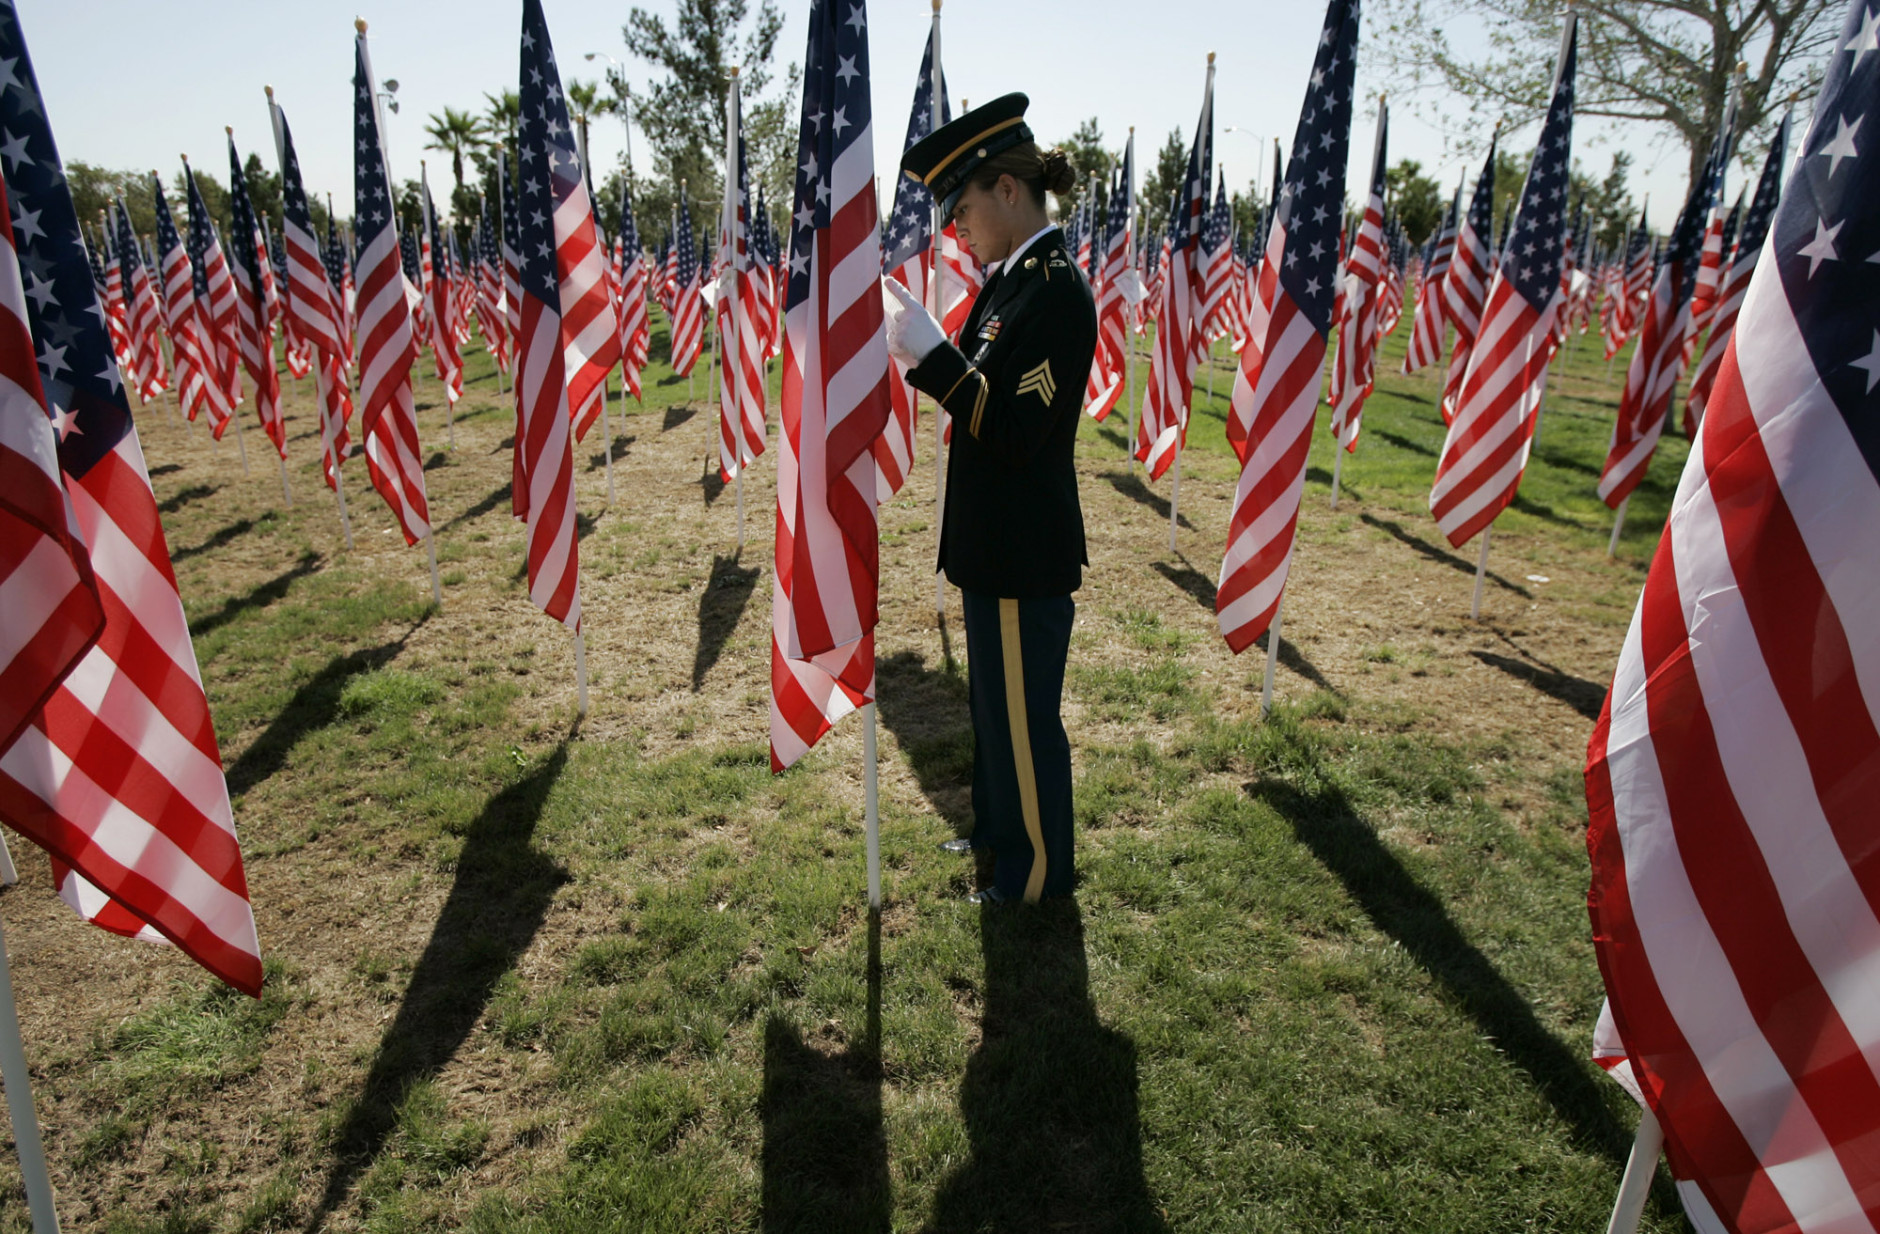 Sgt. Neomi Raap, an honor guard member of the Nevada Army National Guard, reads a name attached to a flag while visiting a 9/11 memorial in Las Vegas on Monday, Sept. 11, 2006. Palm Mortuary of Las Vegas put up 2,996 U.S. flags honoring the people killed five years ago in the terrorist attacks. (AP Photo/Laura Rauch)